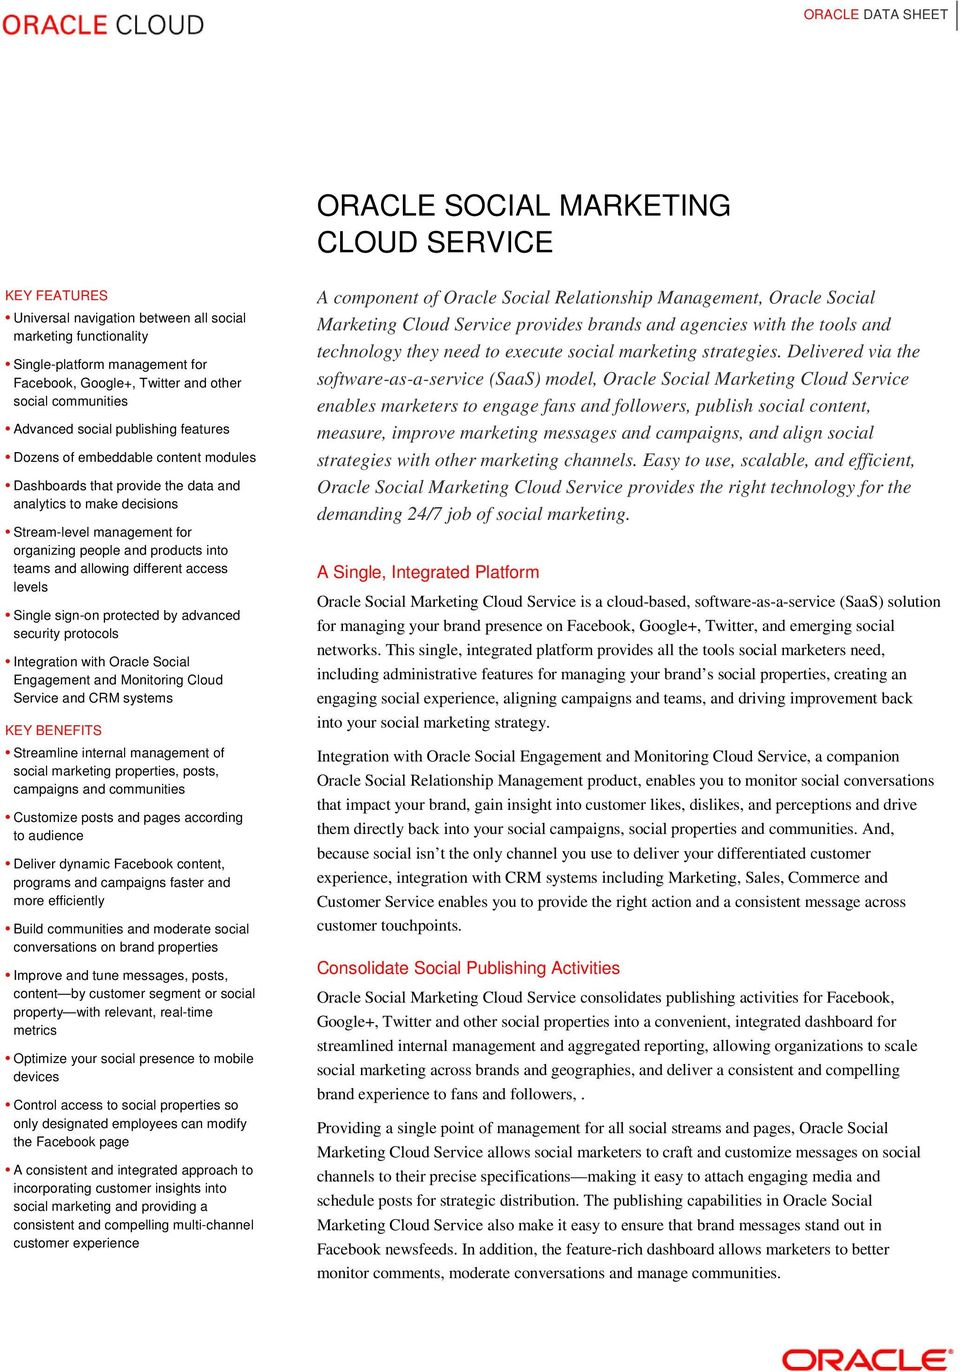 products into teams and allowing different access levels Single sign-on protected by advanced security protocols Integration with Oracle Social Engagement and Monitoring Cloud Service and CRM systems